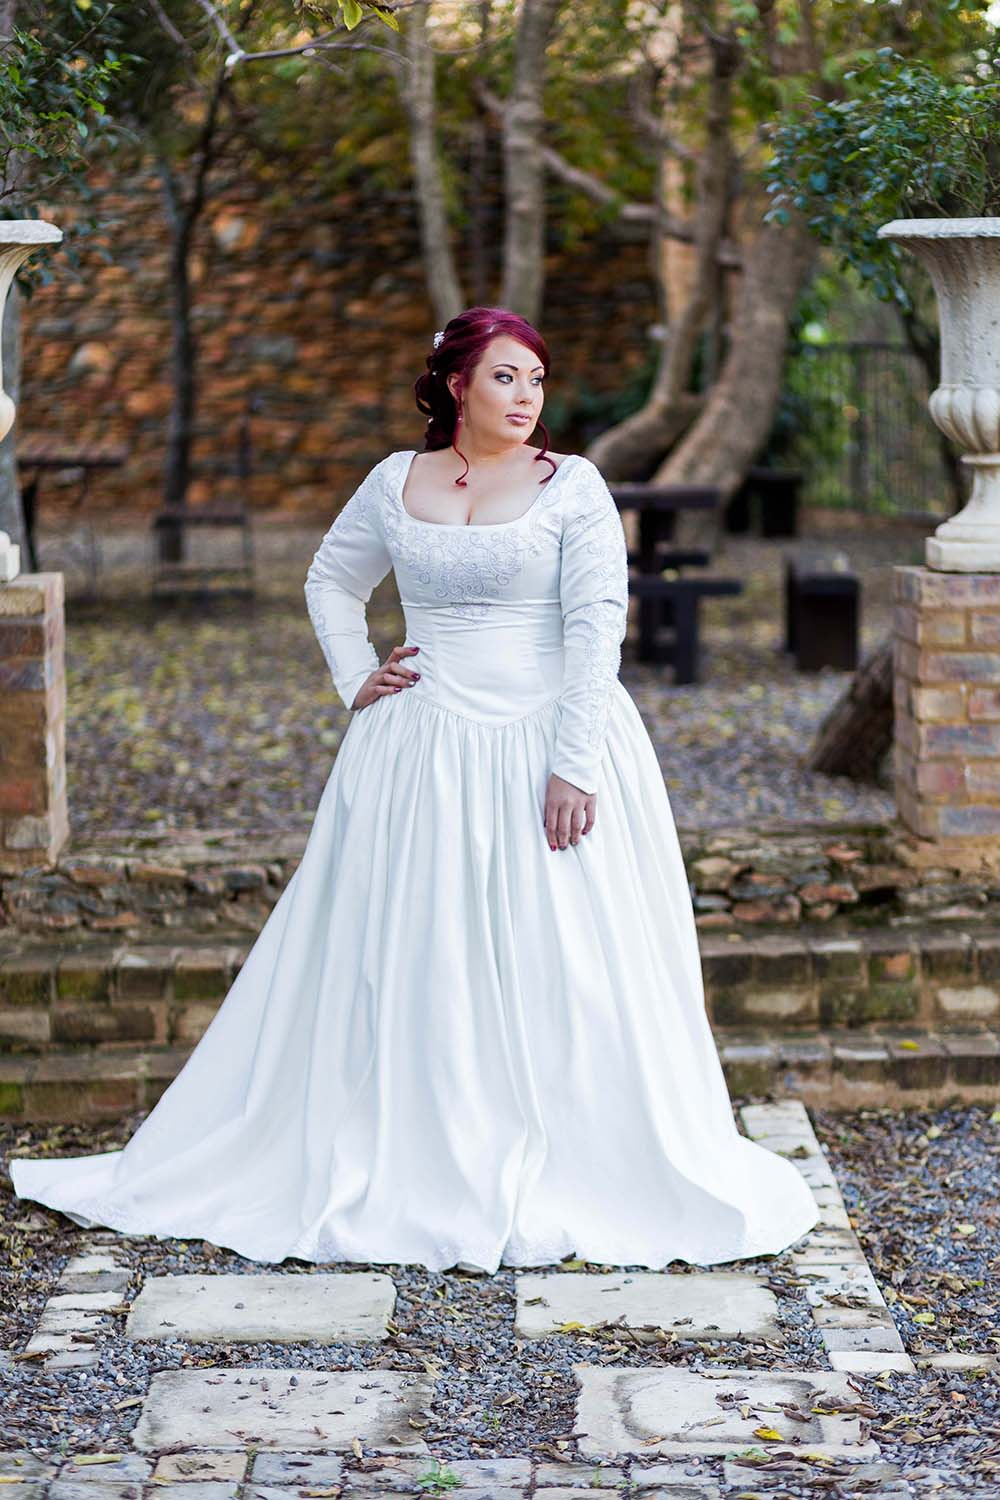 Stunning Medieval Inspired Wedding Dress Contemporary - Wedding and ...